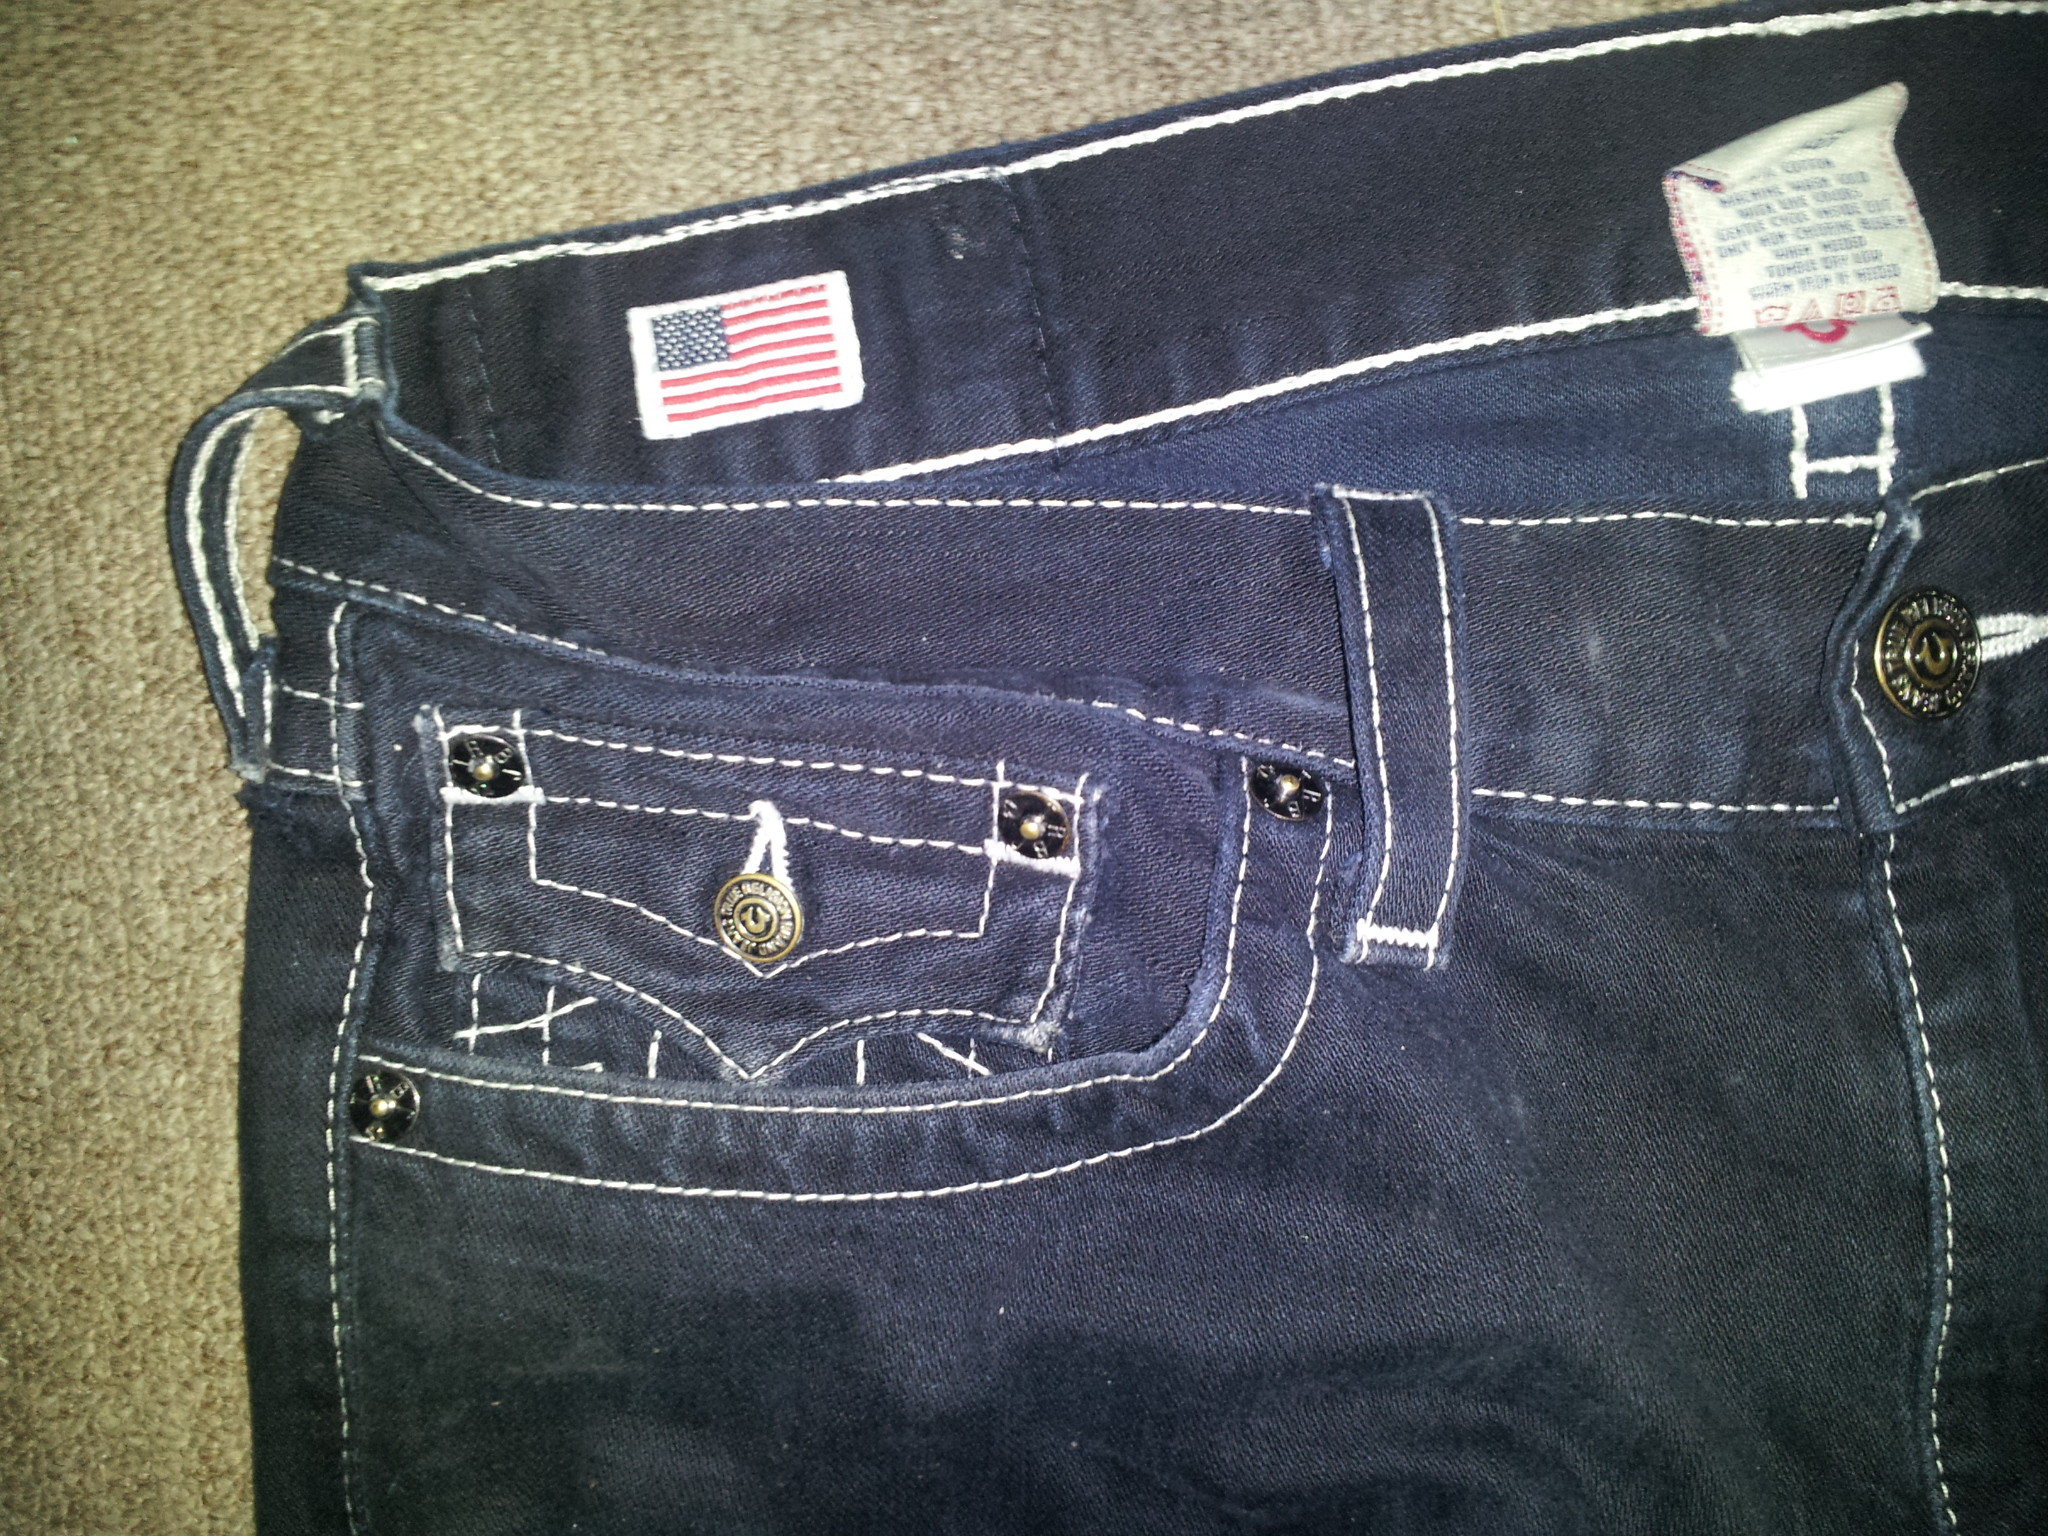 Can TRUE RELIGION Jeans have a ROUNDED FLAP POCKET… – The eBay Community